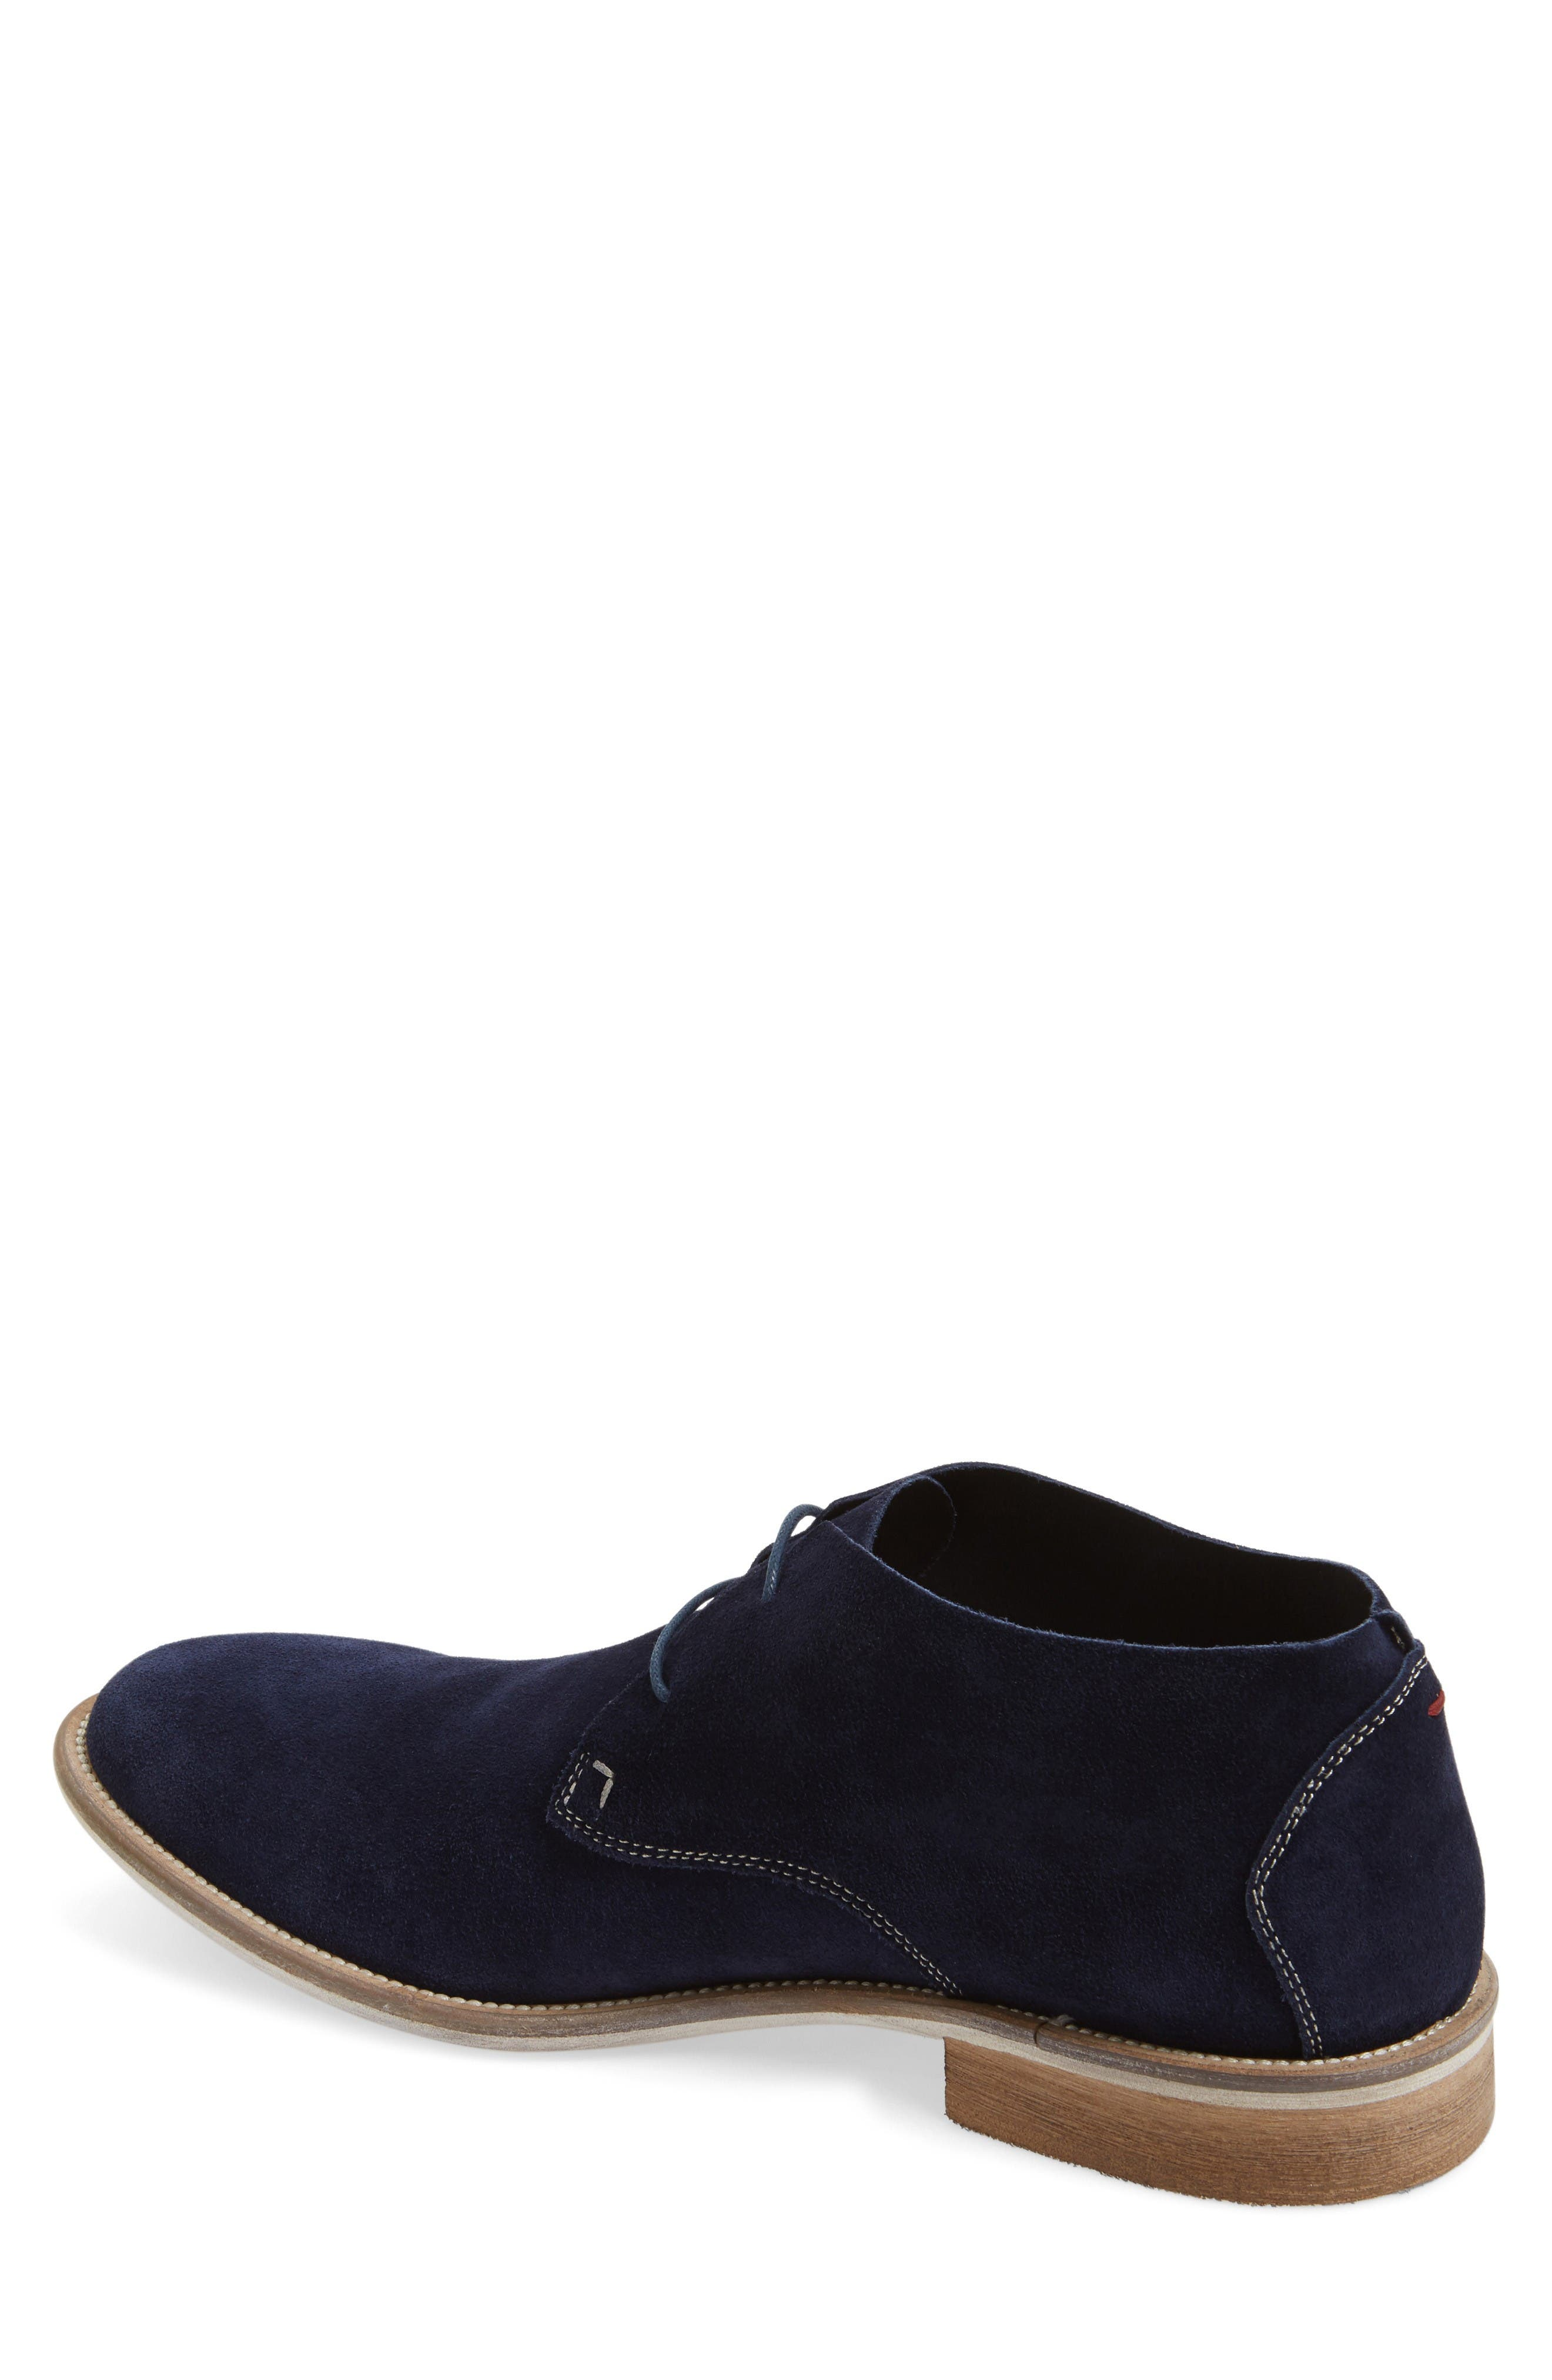 Take Comfort Chukka Boot,                             Alternate thumbnail 2, color,                             Midnight Navy Suede